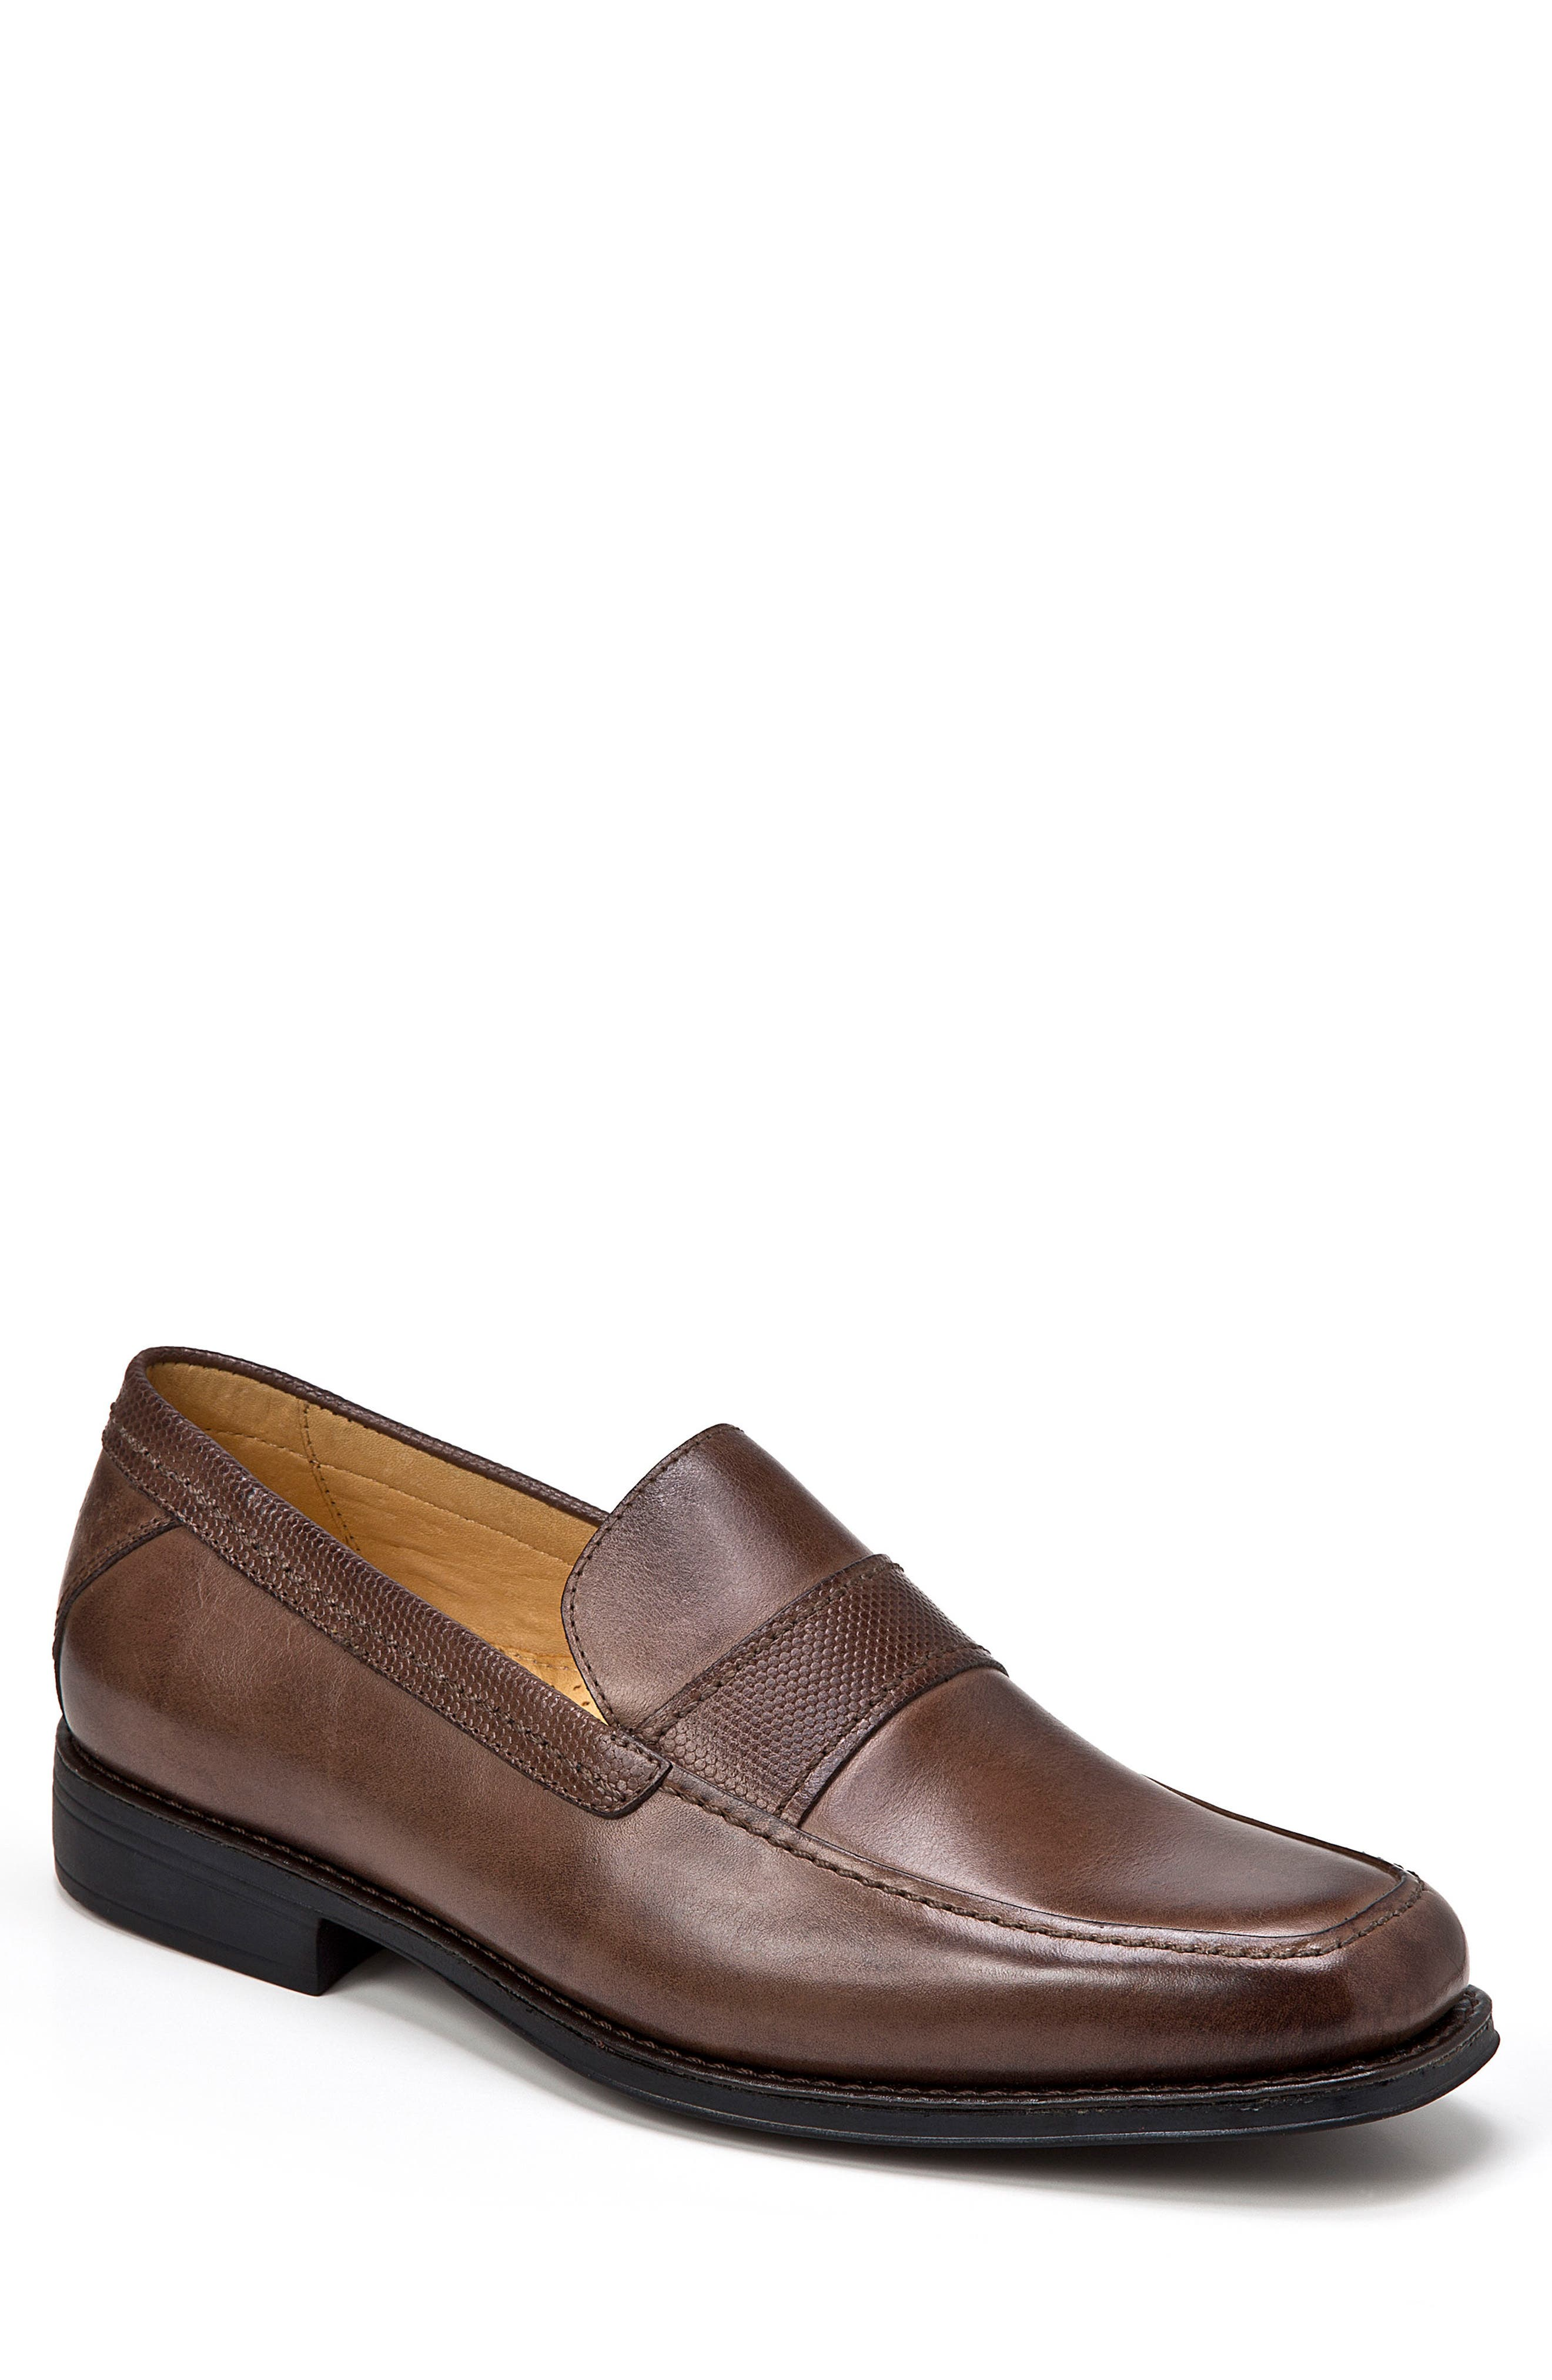 Sandro Moscoloni Edward Loafer, Brown